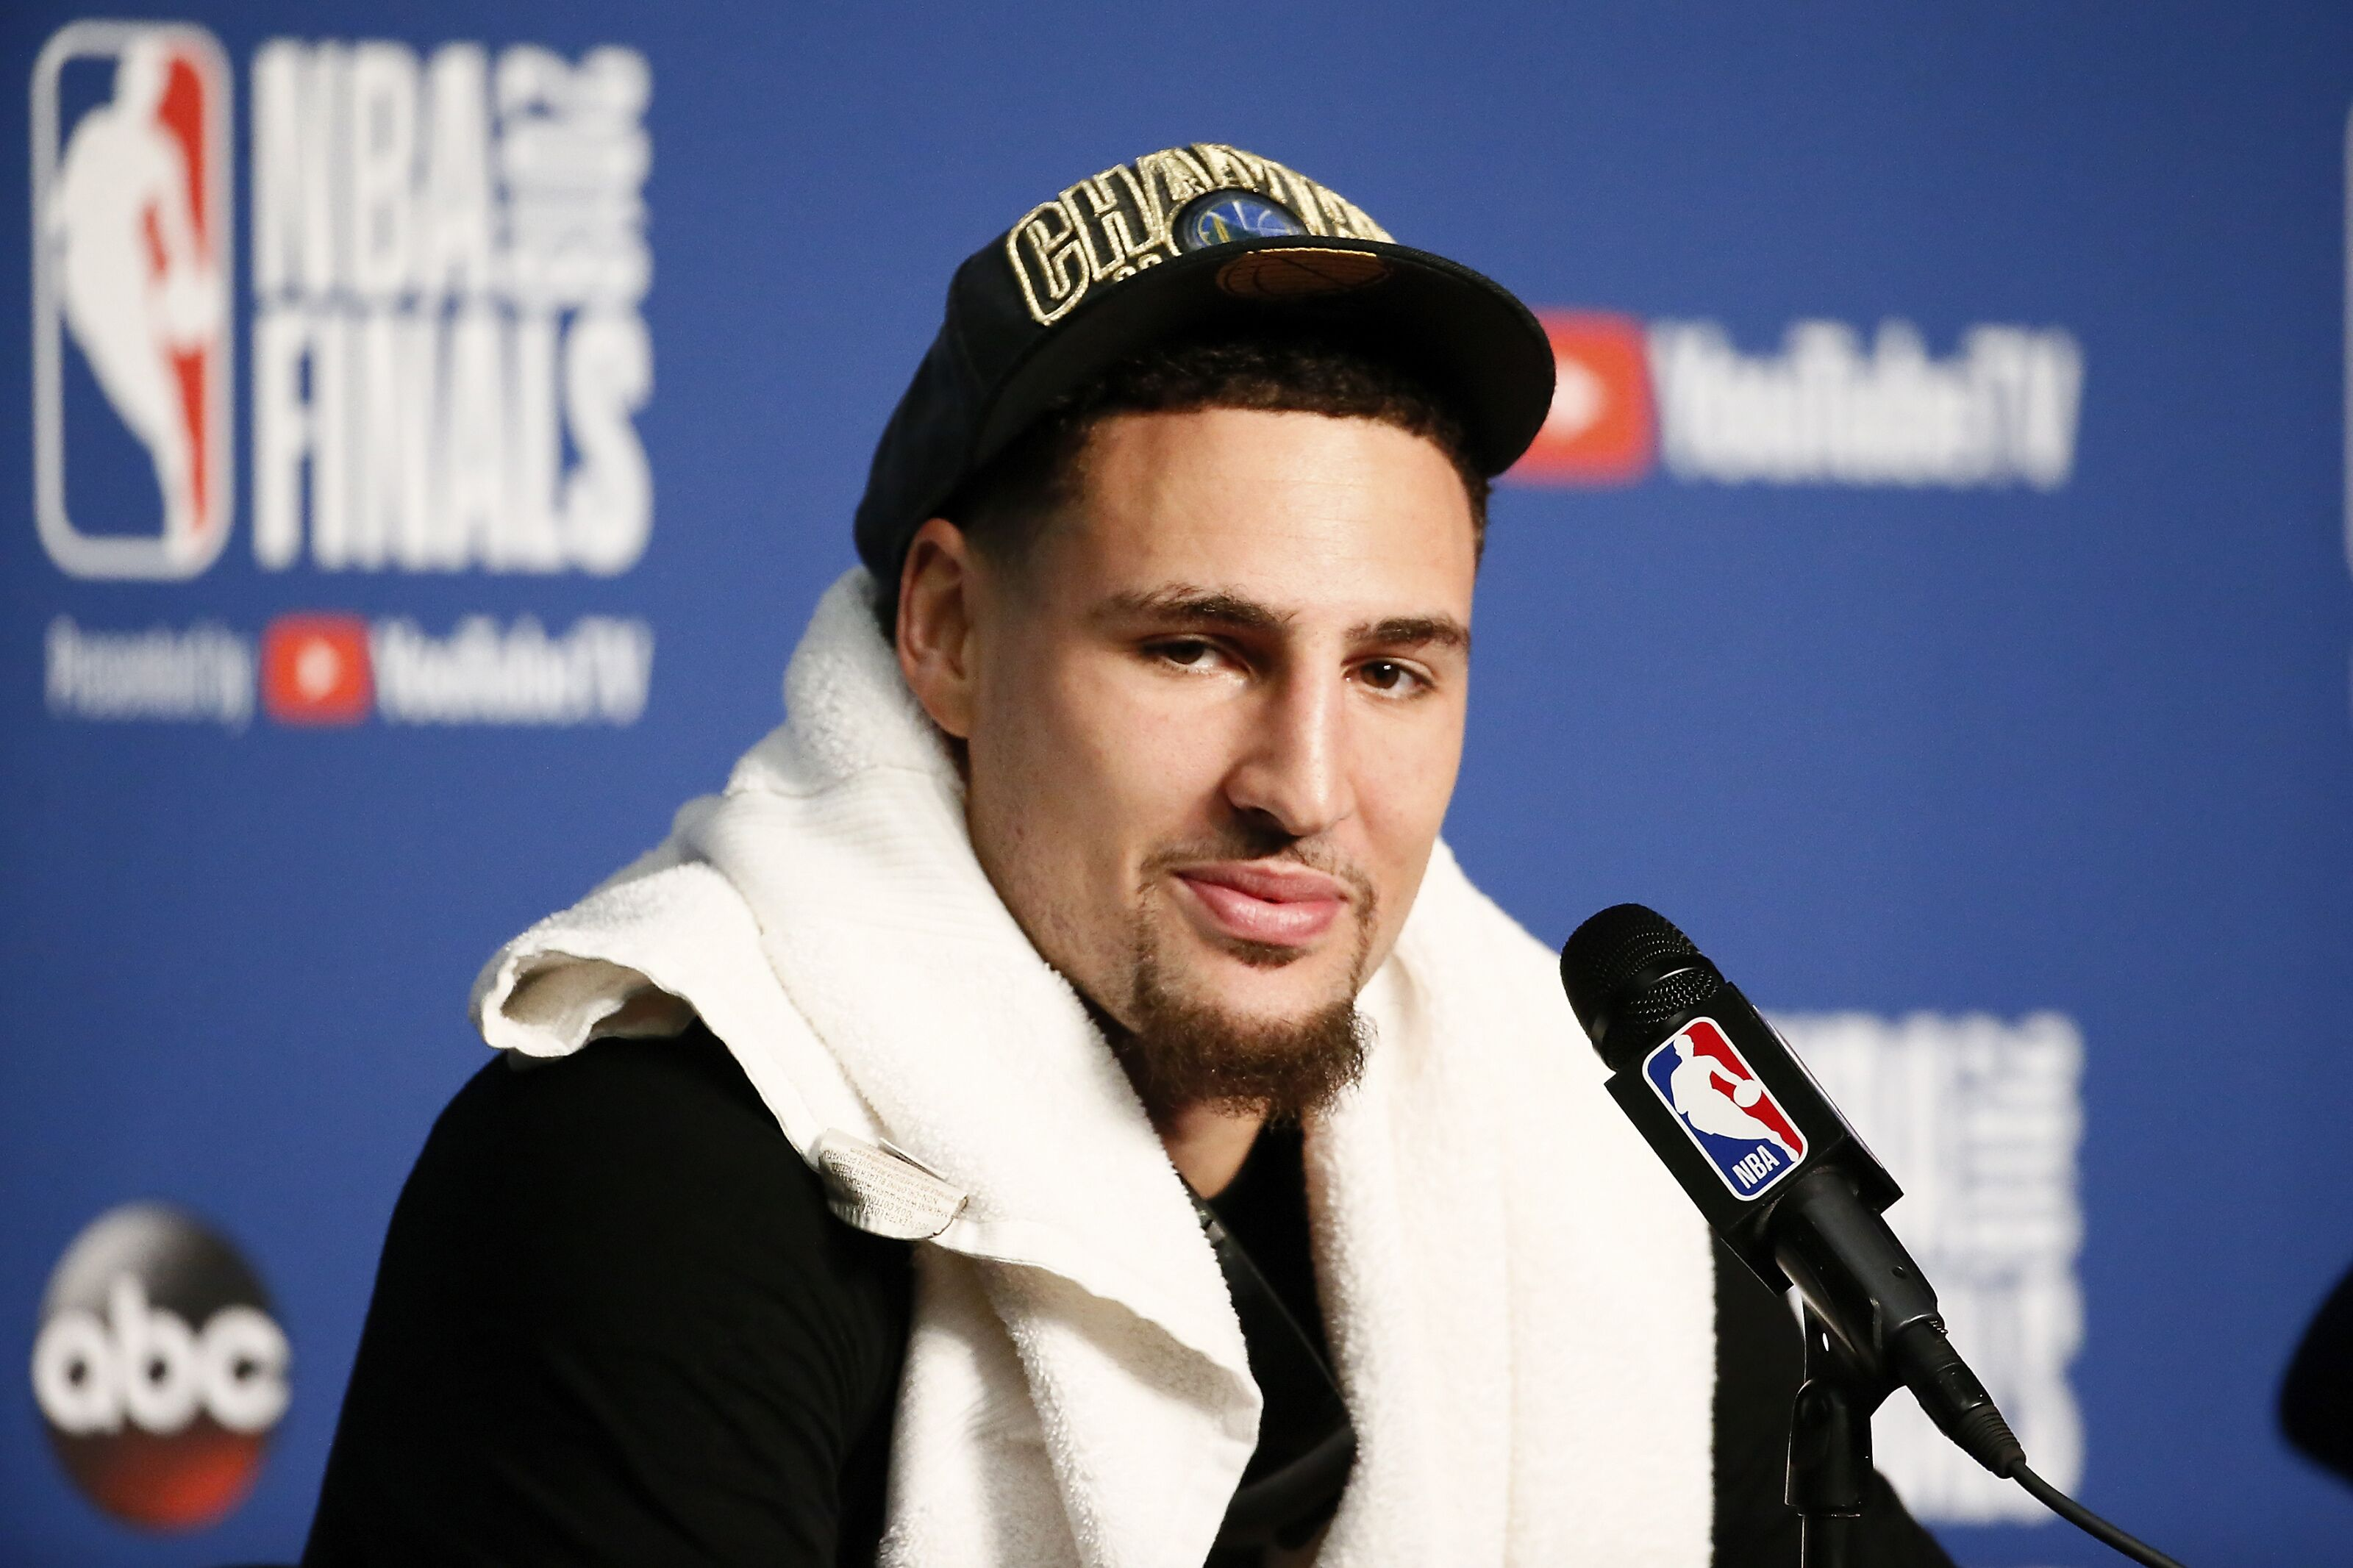 Golden State Warriors: Was Klay Thompson really snubbed?